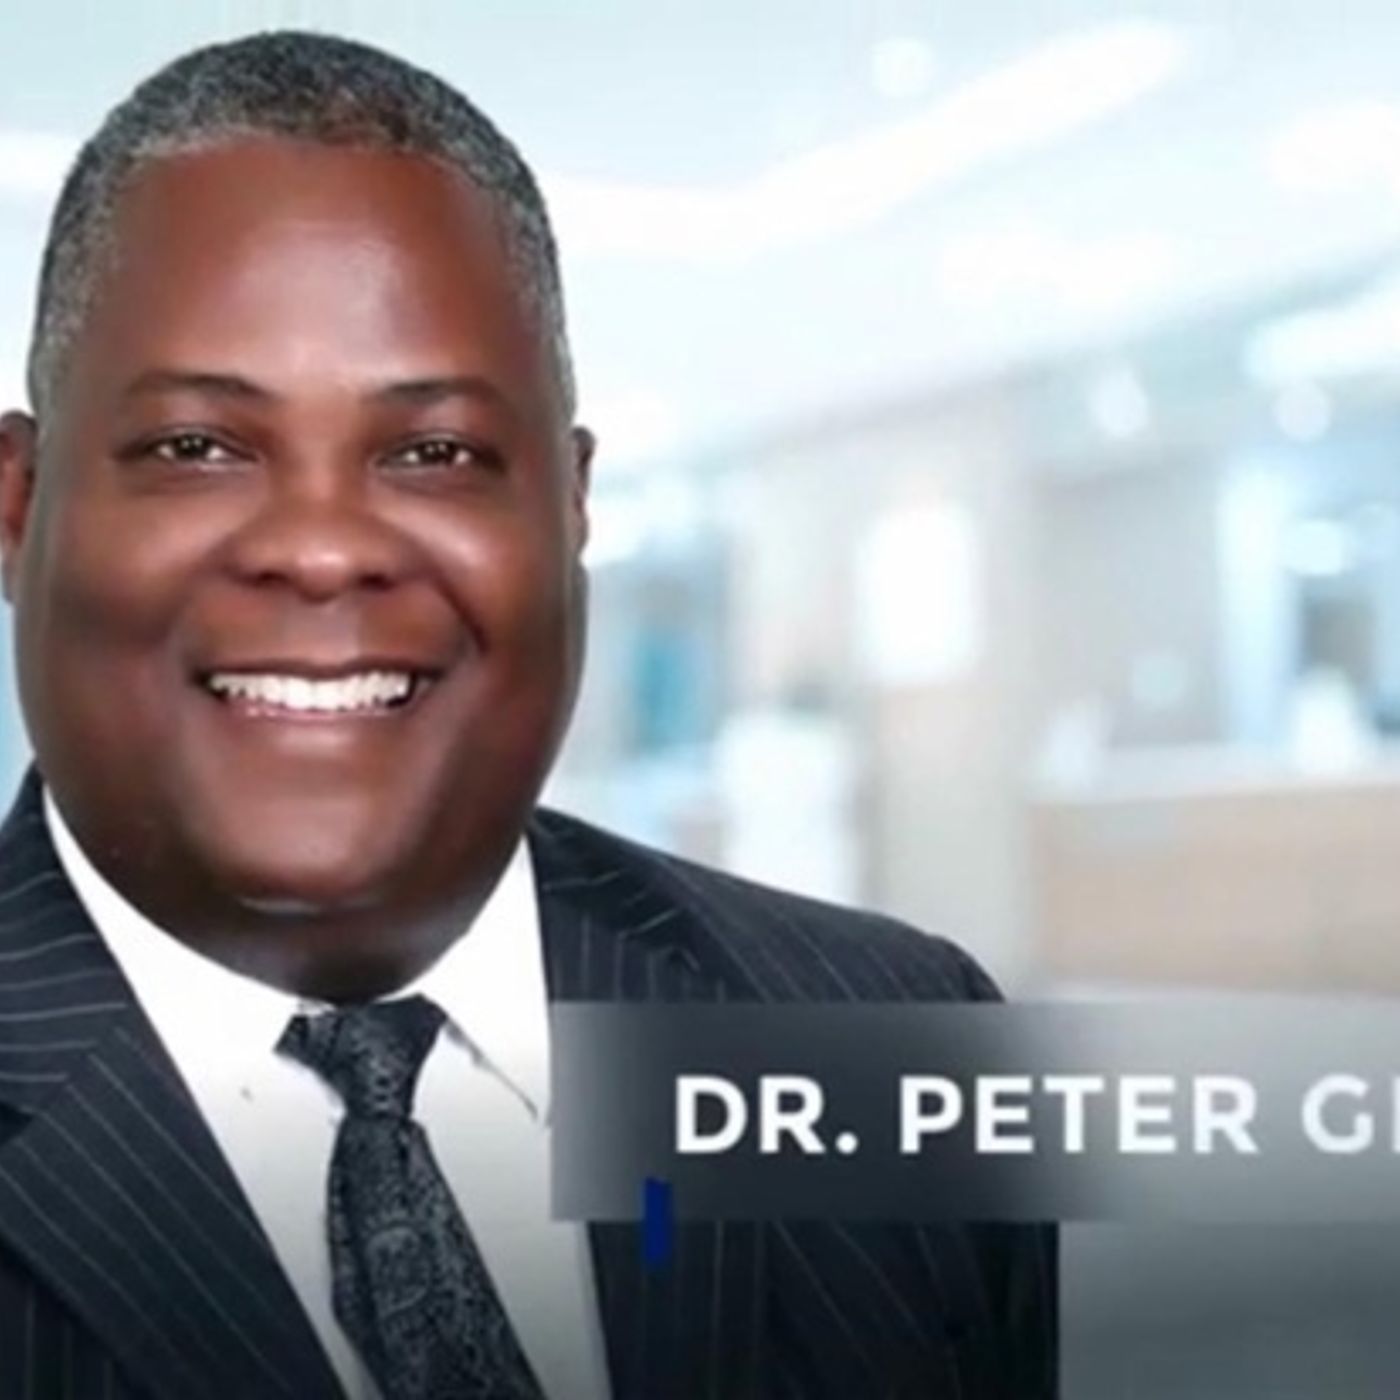 The State Of Covid In Jamaica With Dr. Peter Glegg